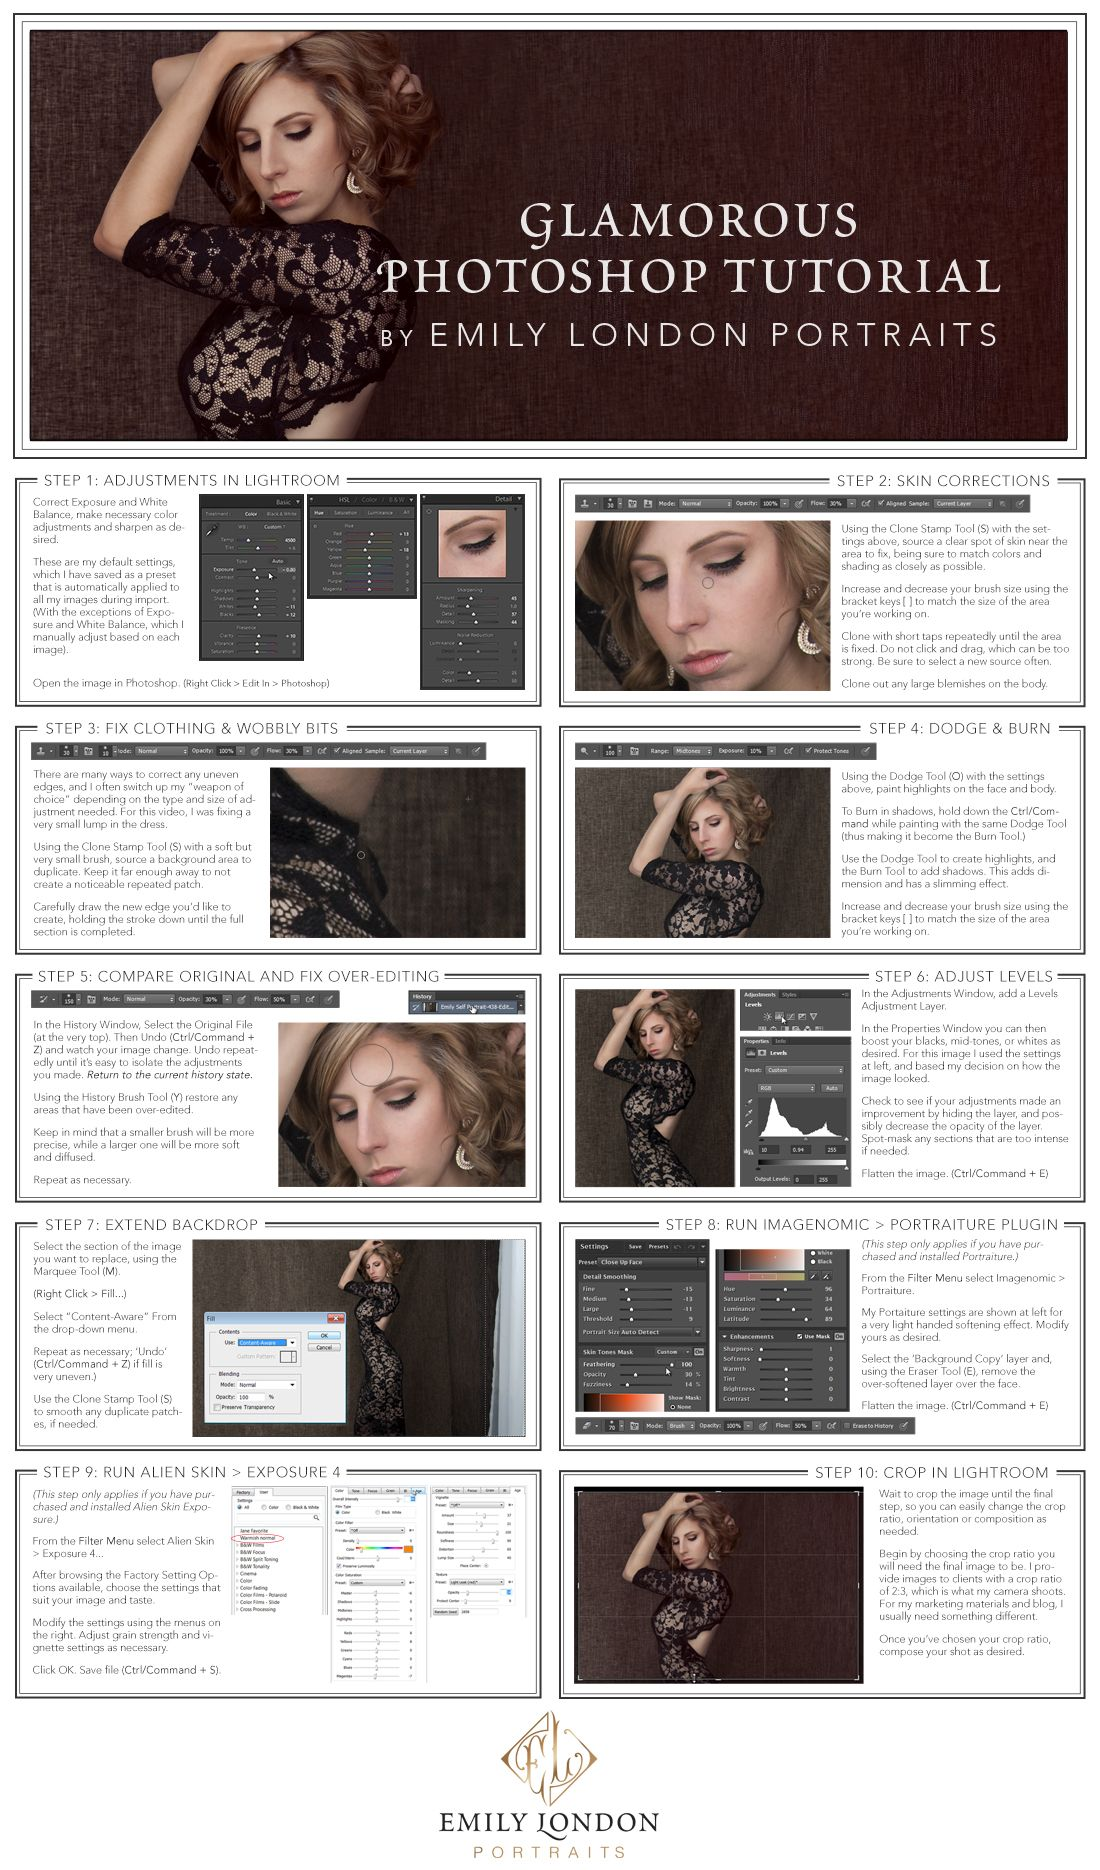 In this tutorial, Utah Glamor Portrait Photographer, Emily London, will teach how to edit a modern glamour portrait in Photoshop.